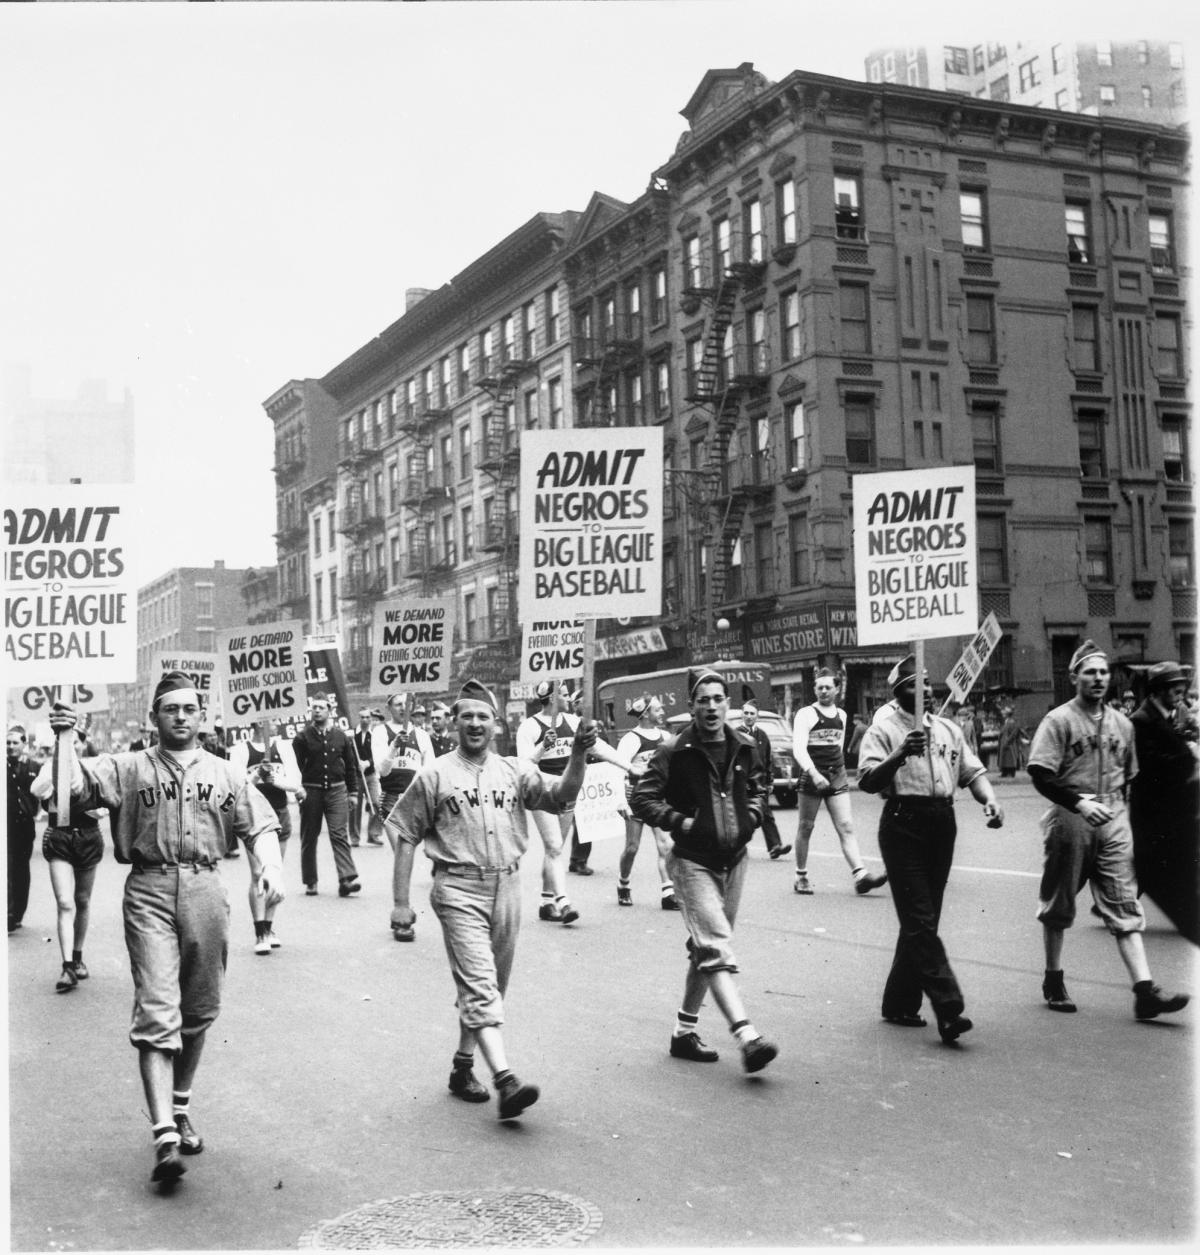 Protesters march in the streets holding signs